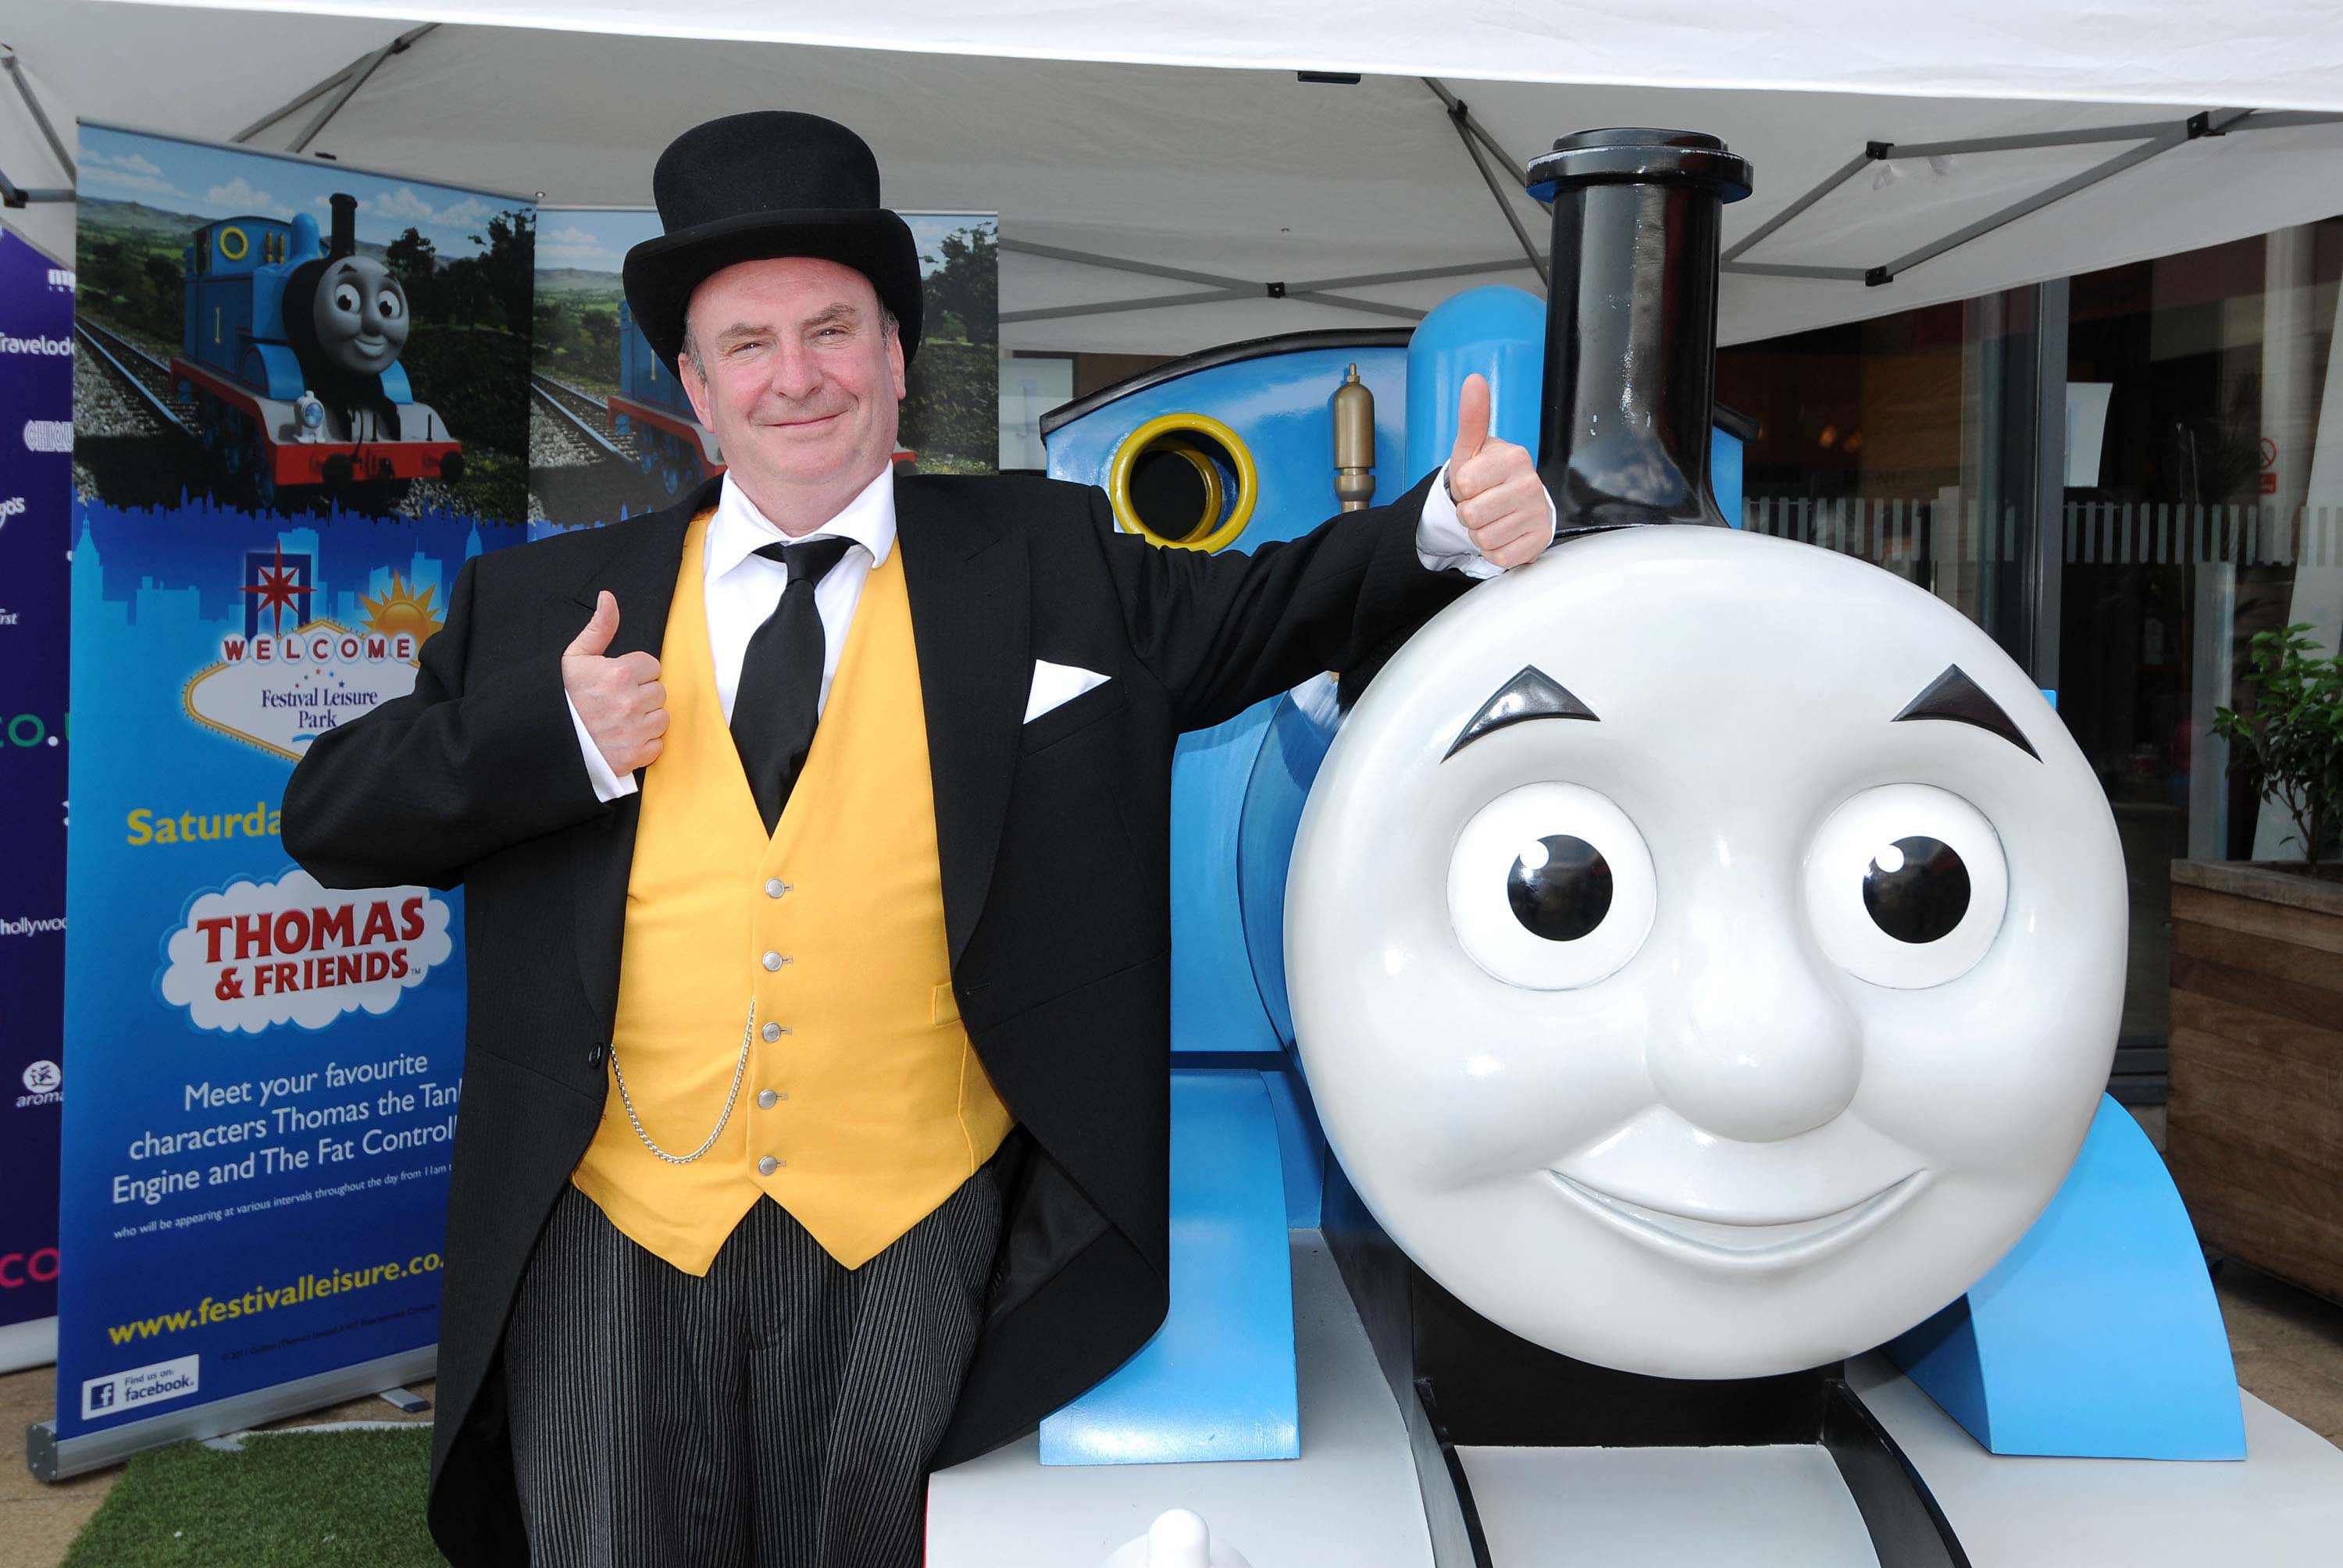 Thomas the Tank Engine mascot